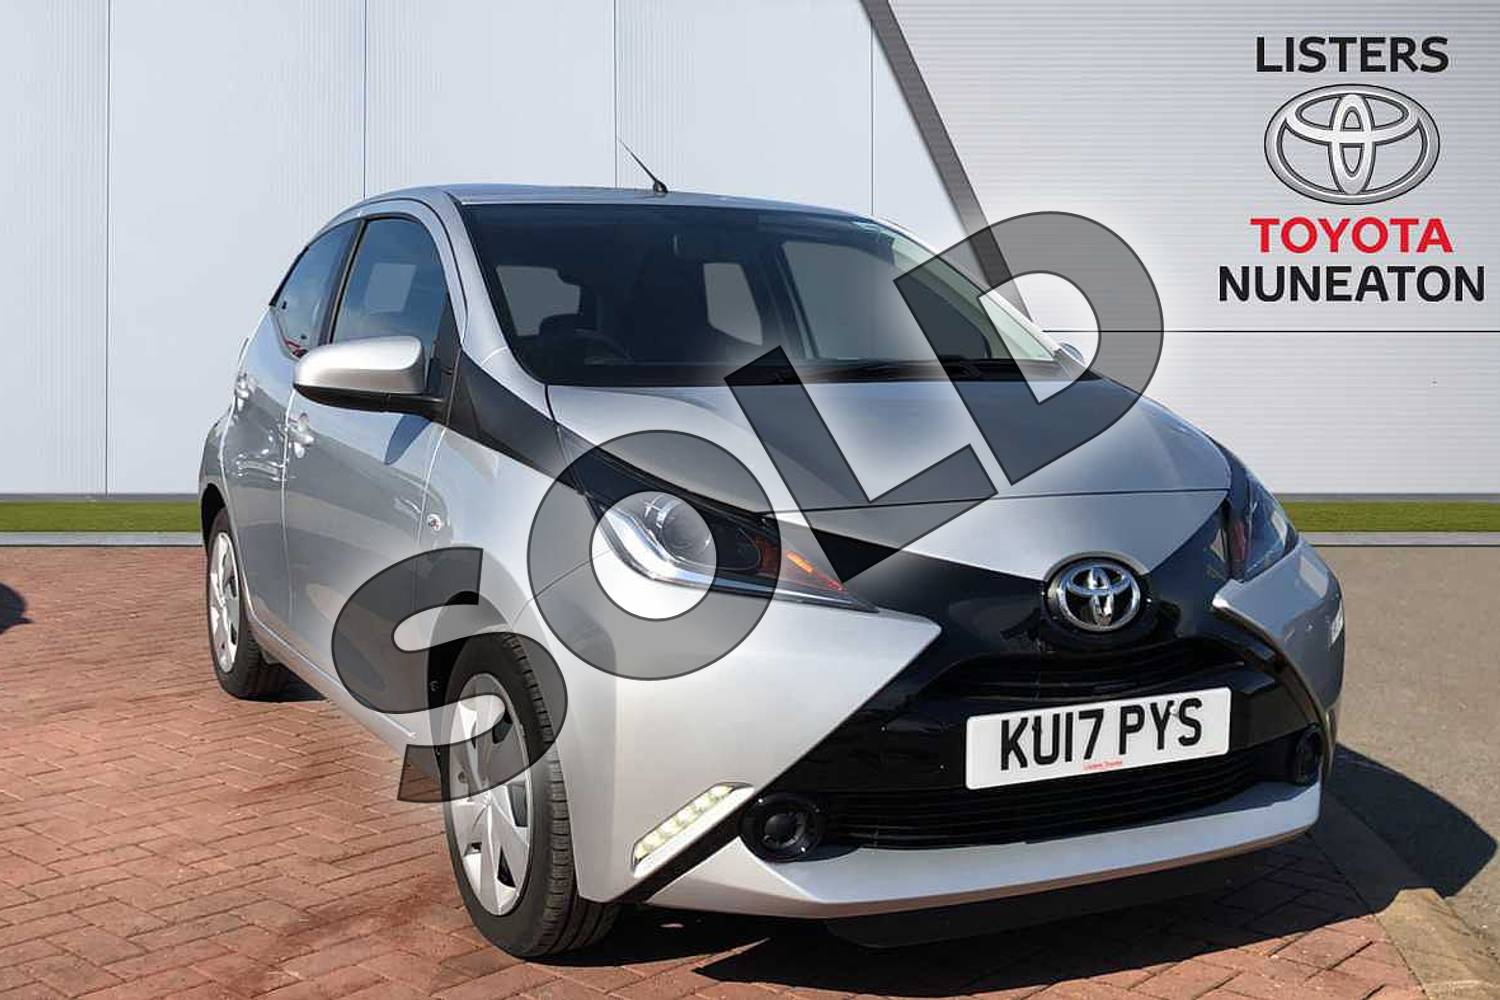 2017 Toyota AYGO Hatchback 1.0 VVT-i X-Play 5dr in Silver at Listers Toyota Nuneaton